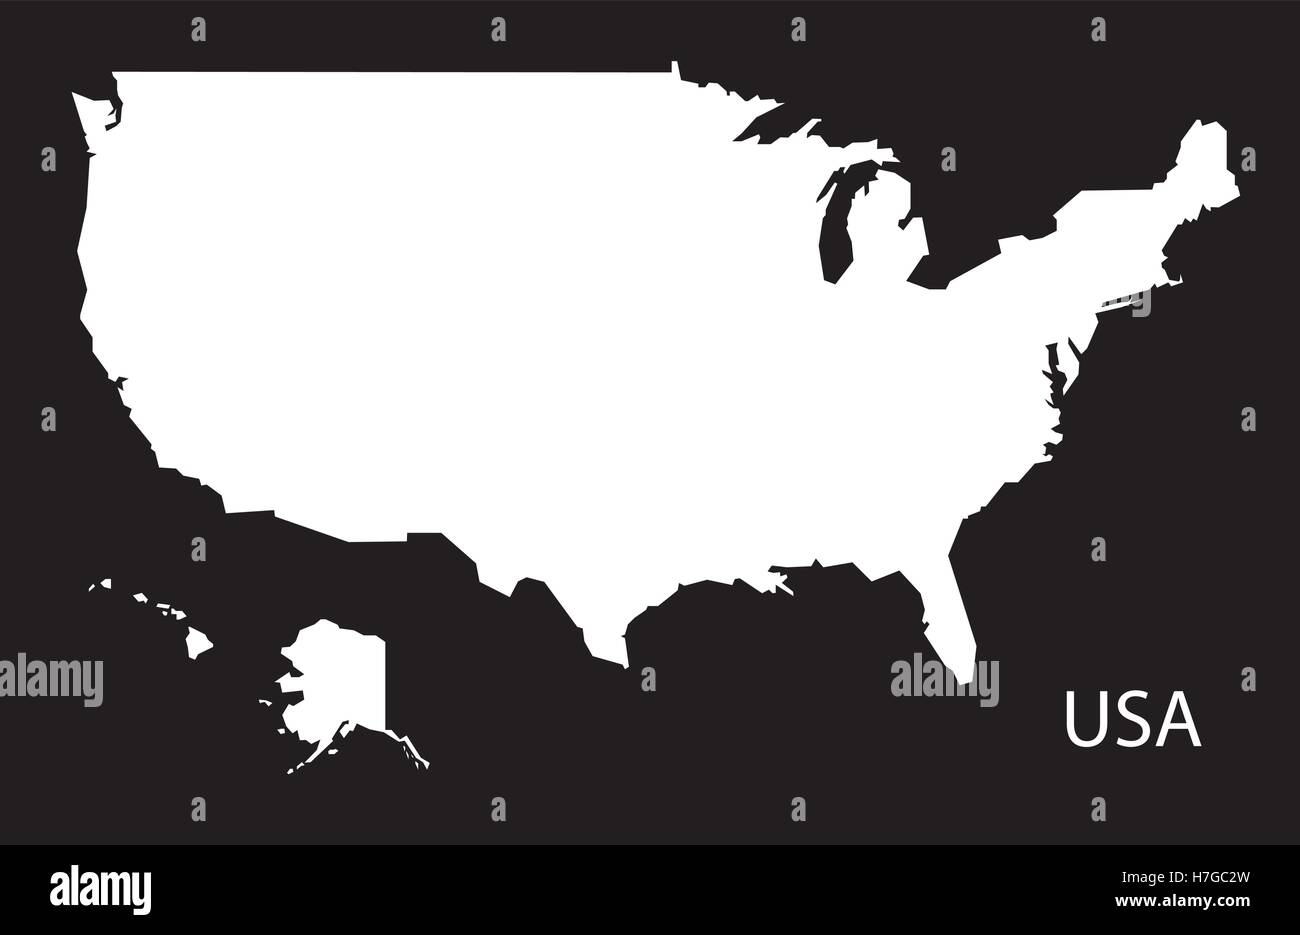 Usa Map Black.Usa Map Black White Stock Vector Art Illustration Vector Image